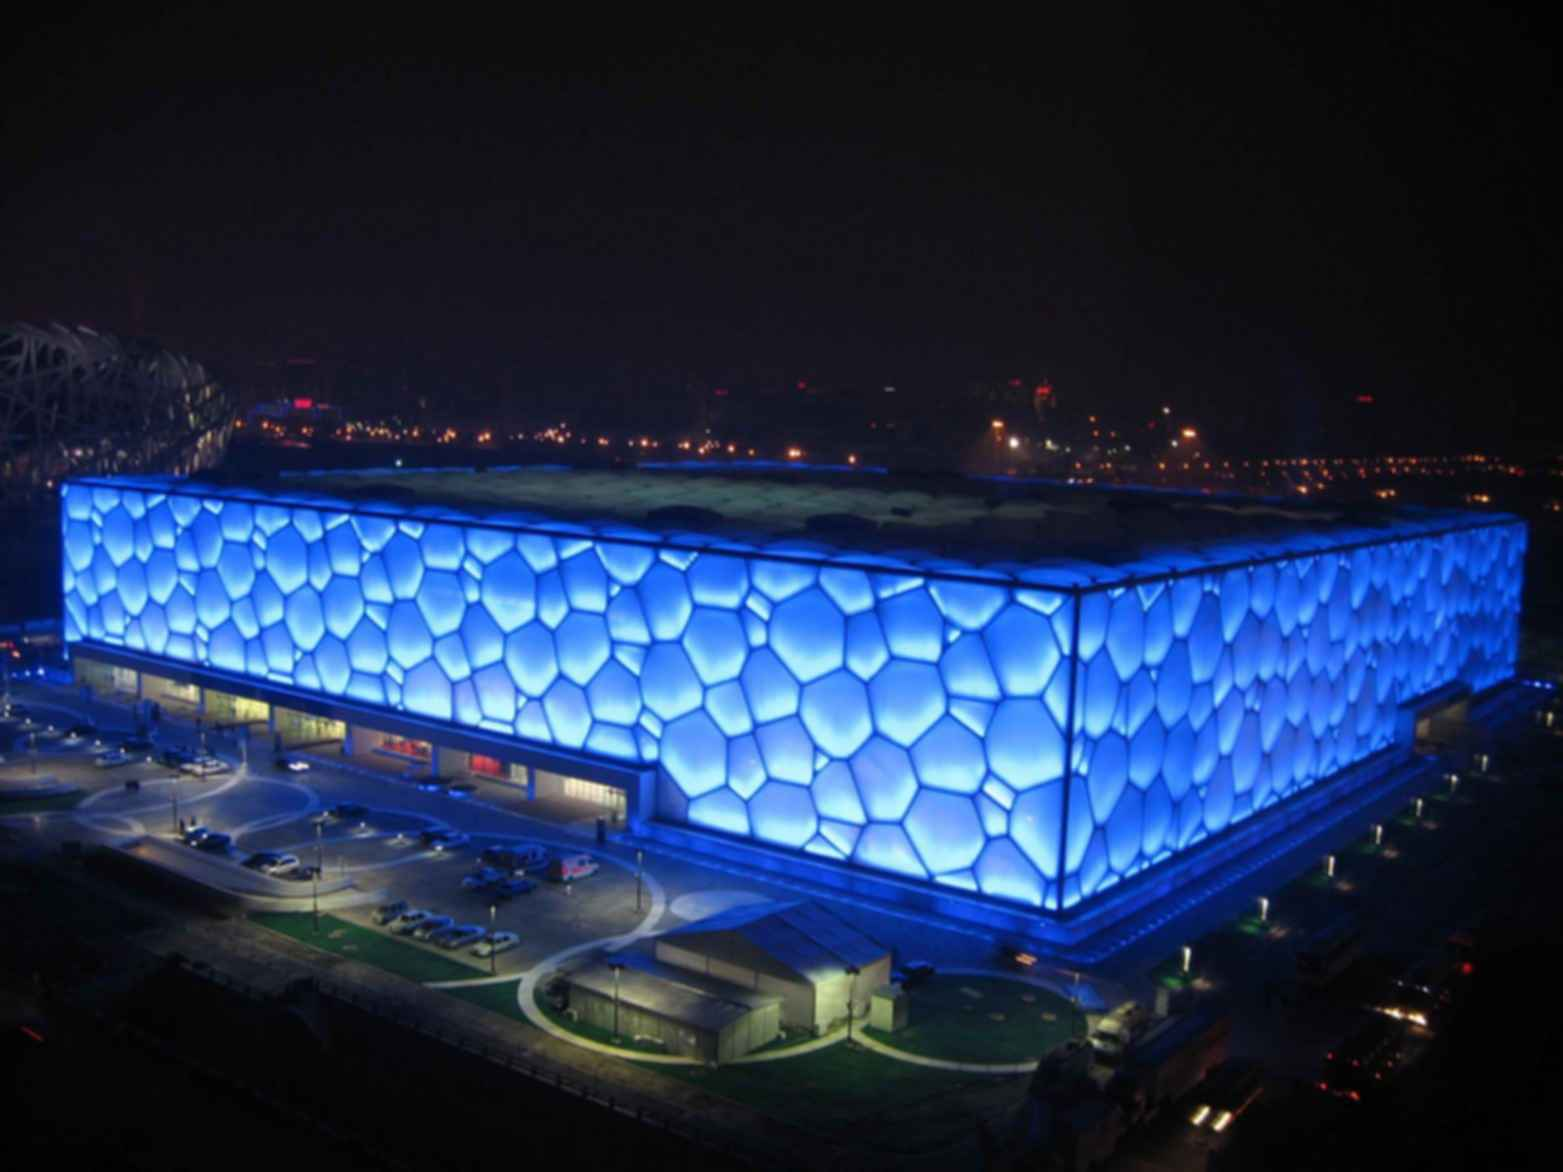 Watercube - Exterior at Night